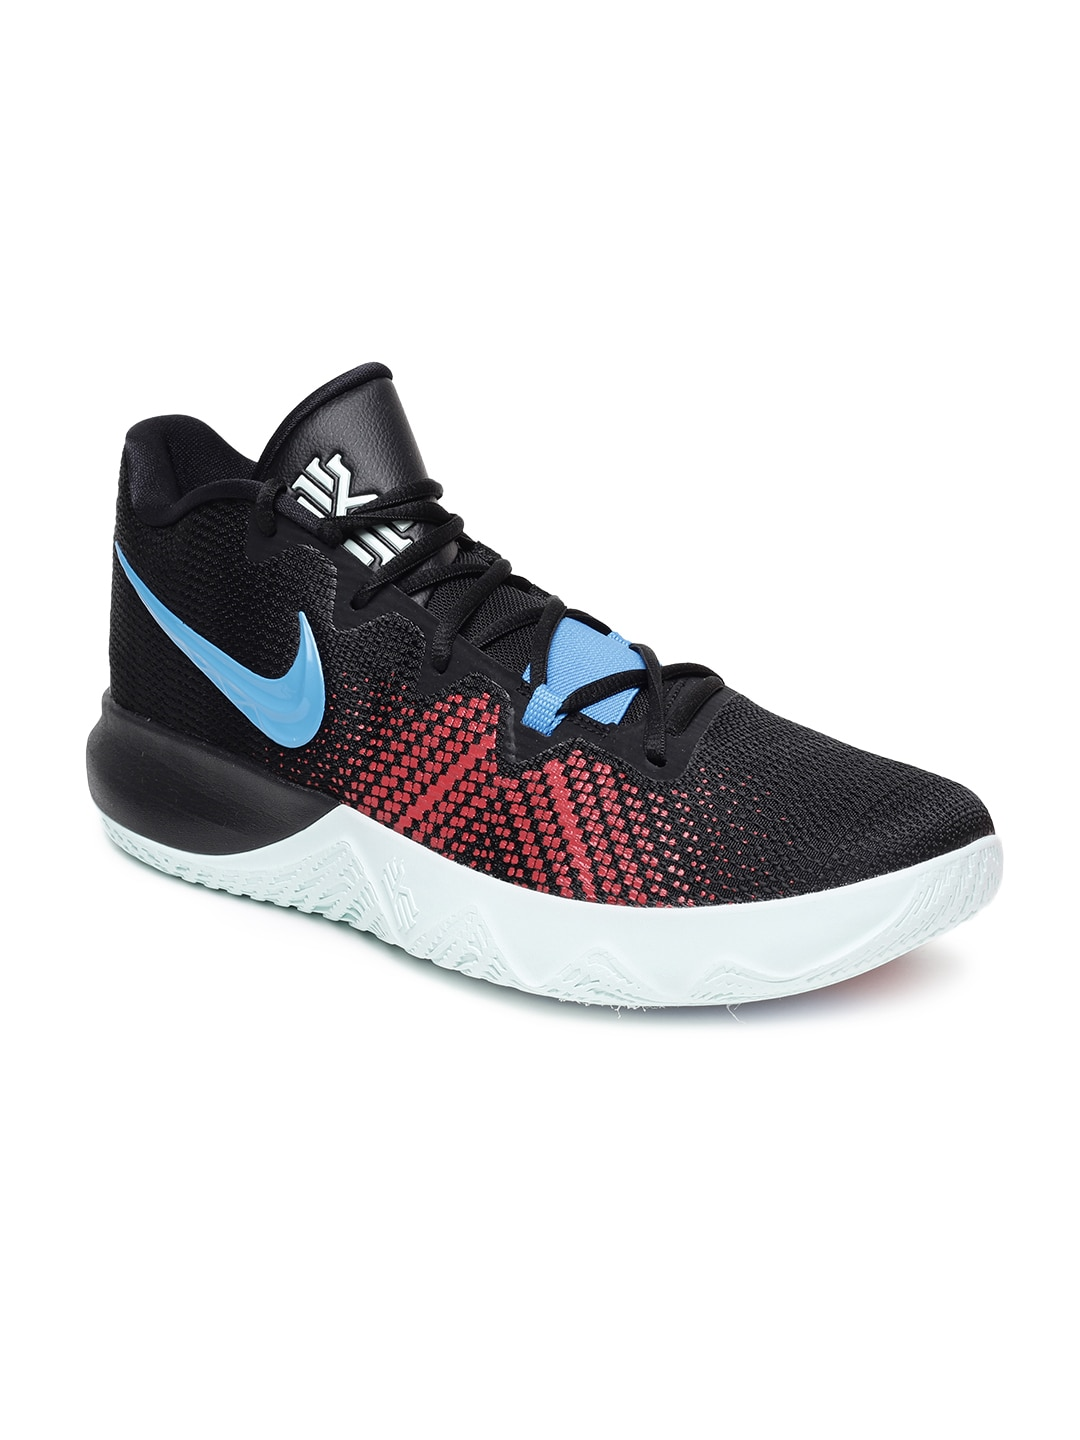 Nike Prime Hype Df Black Basketball Shoes for Men online in India at ... d38c7072c